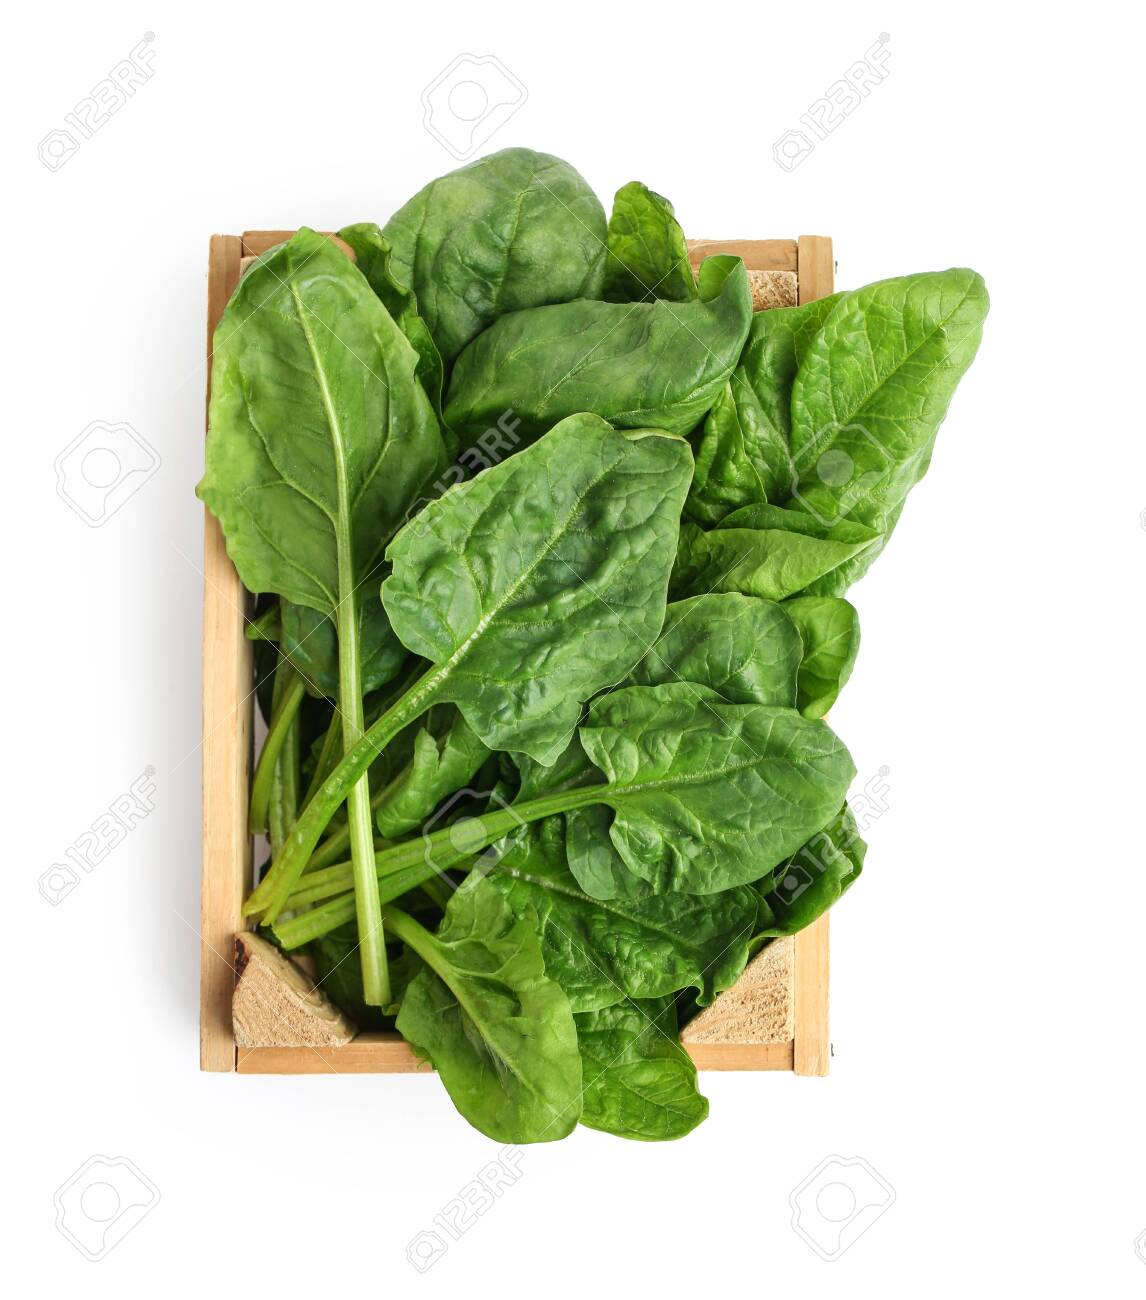 Crate with fresh spinach leaves isolated on white, top view - 121108686